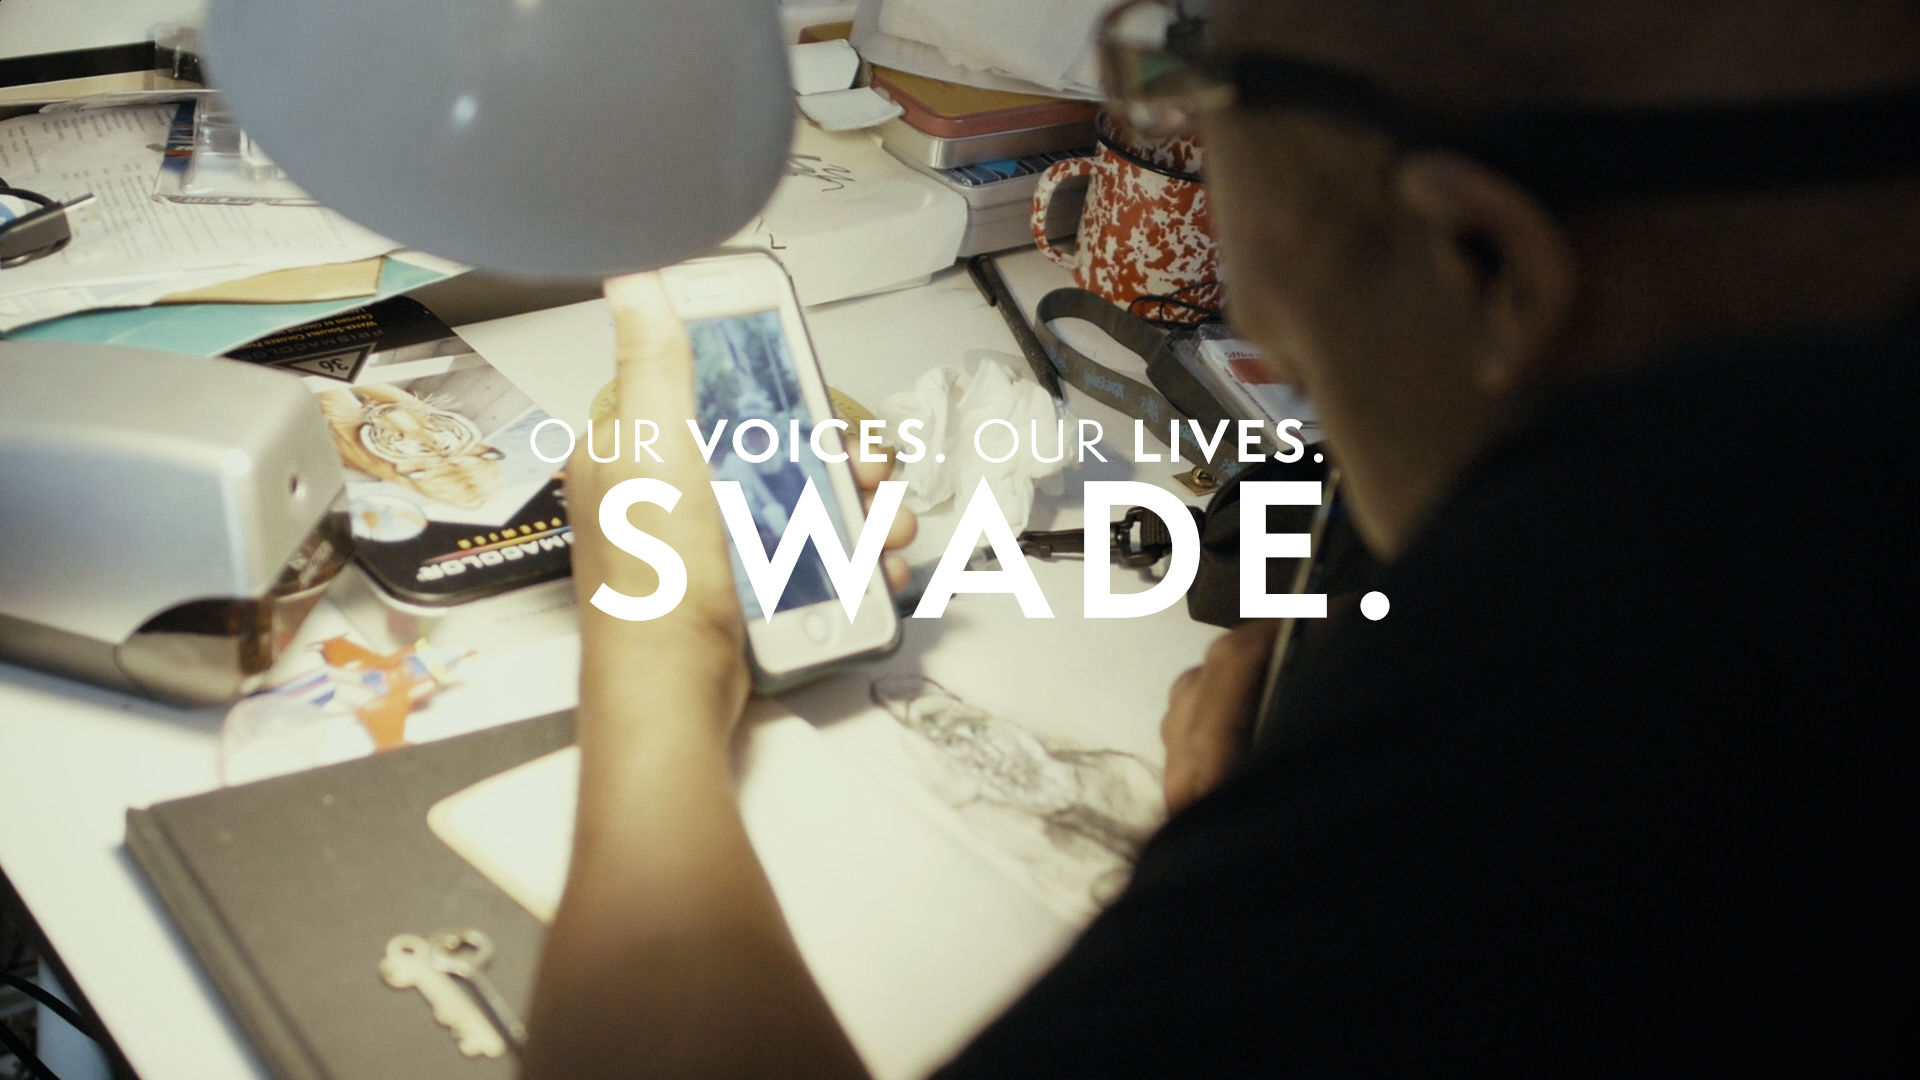 Our Voices. Our Lives. presents SWADE.